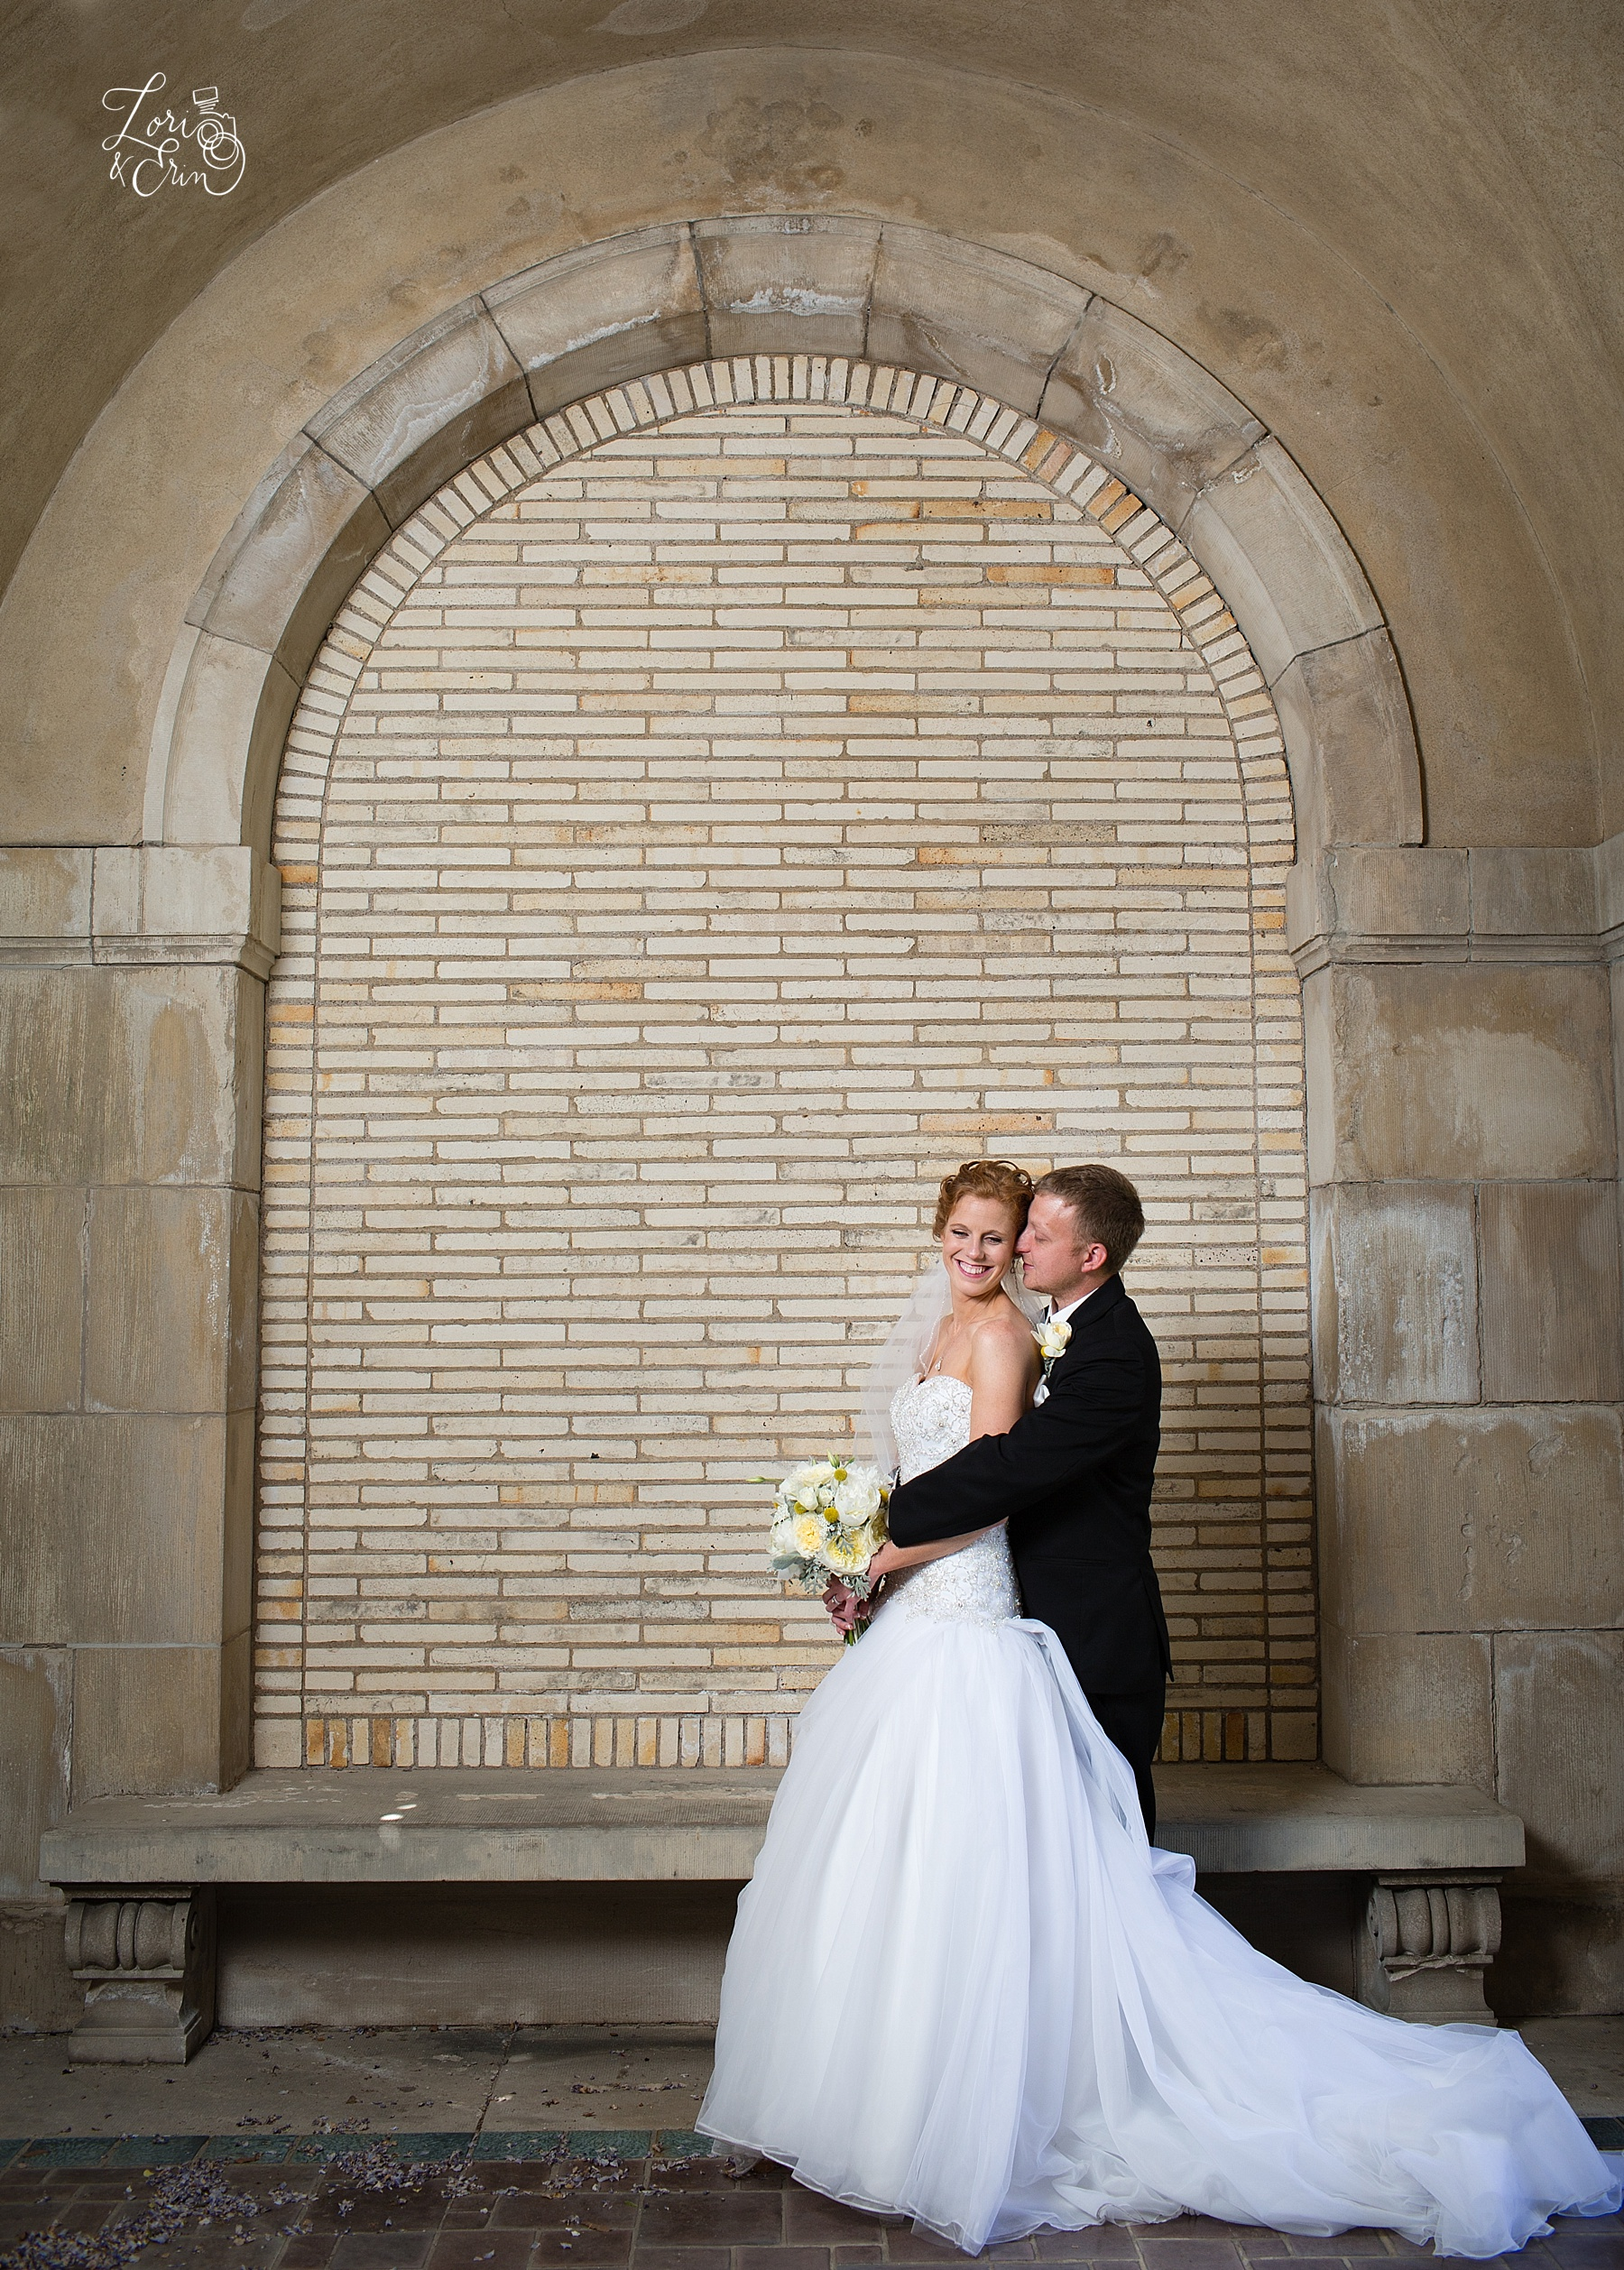 George Eastman House Rochester NY Wedding Photography